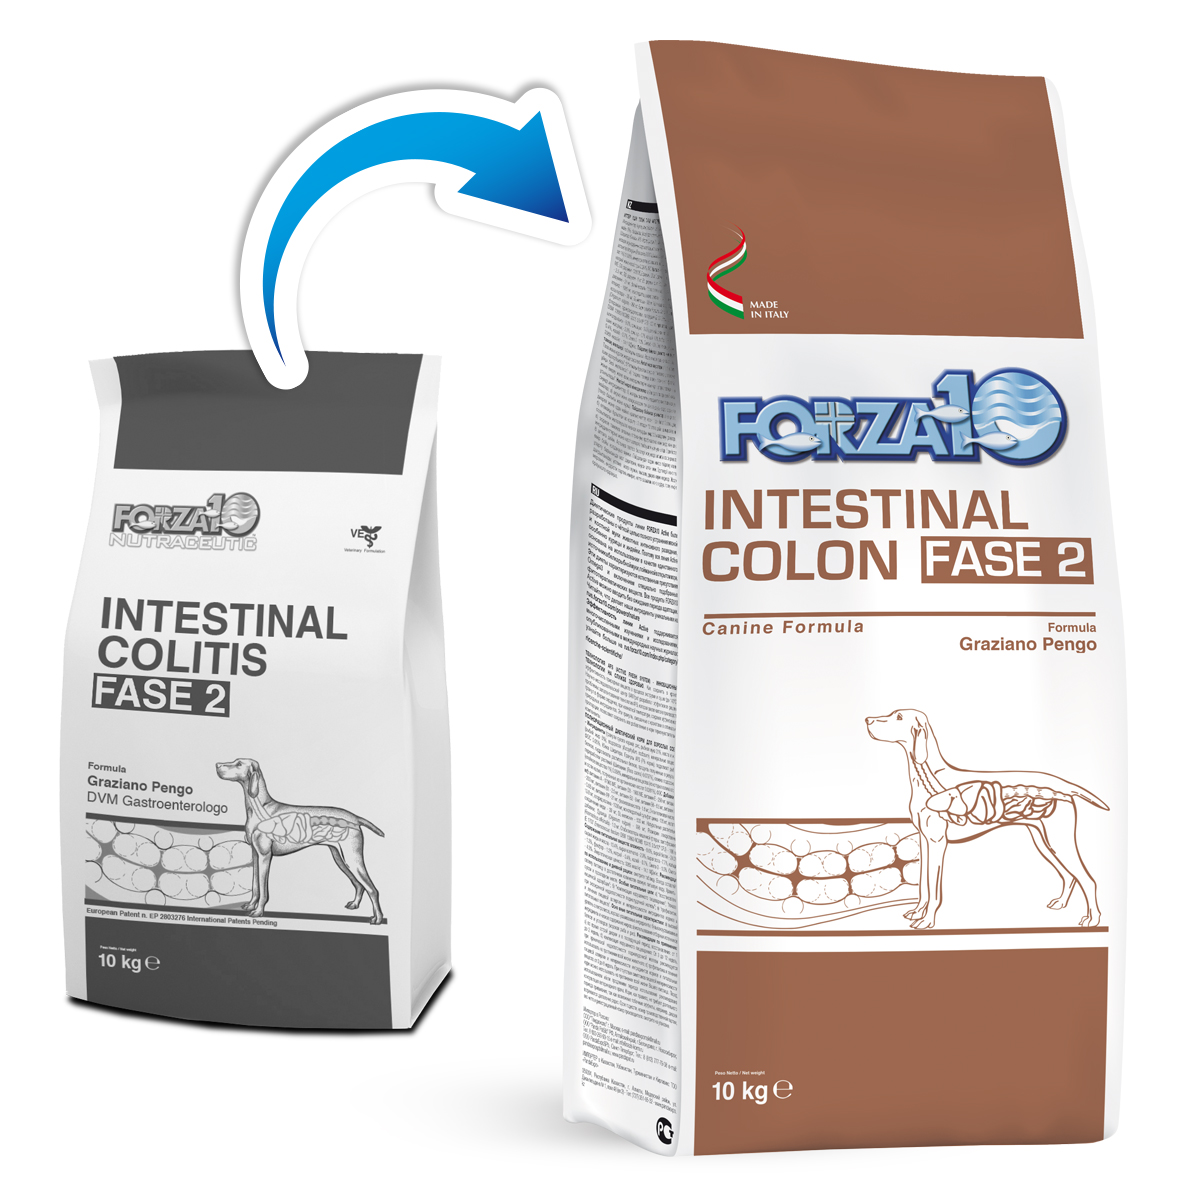 Image of Forza10 Intestinal Colon Fase 2: 4 kg